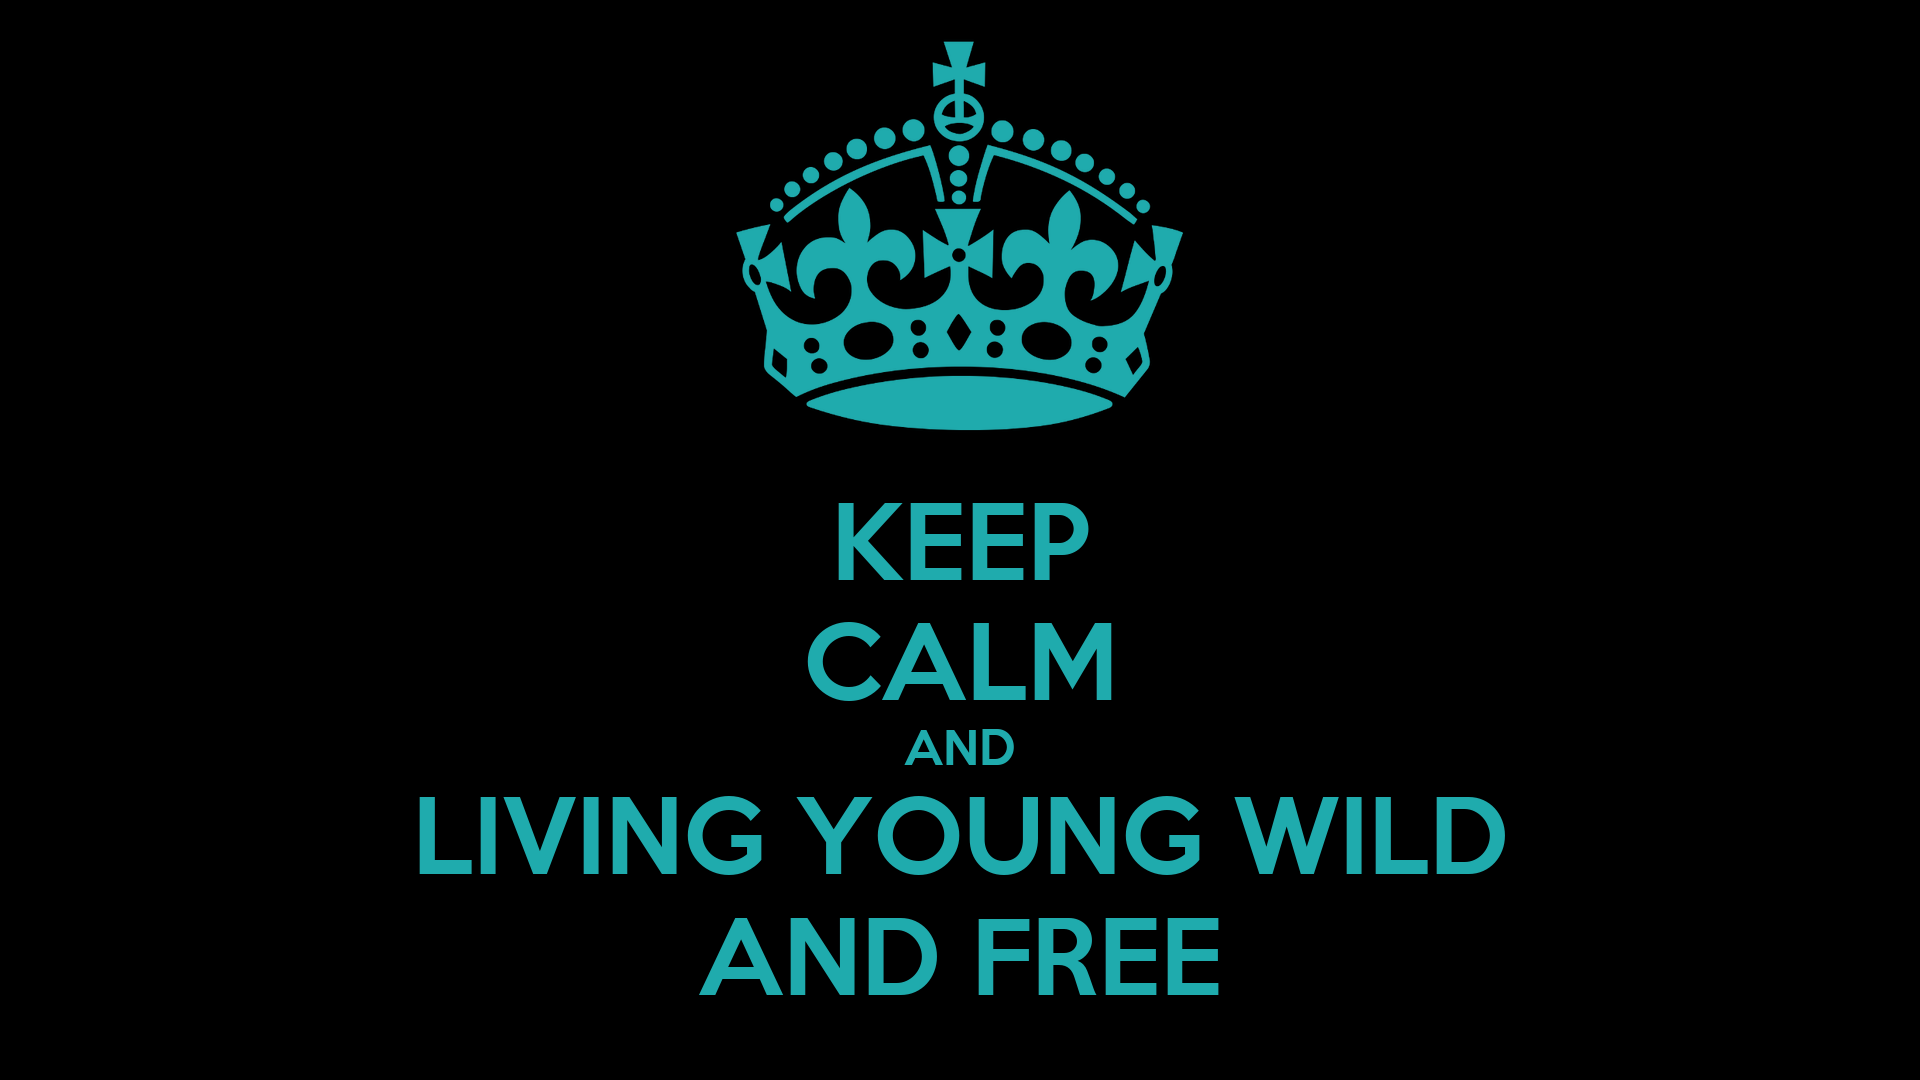 Young Wild And Free Quotes Tumblr: KEEP CALM AND LIVING YOUNG WILD AND FREE Poster